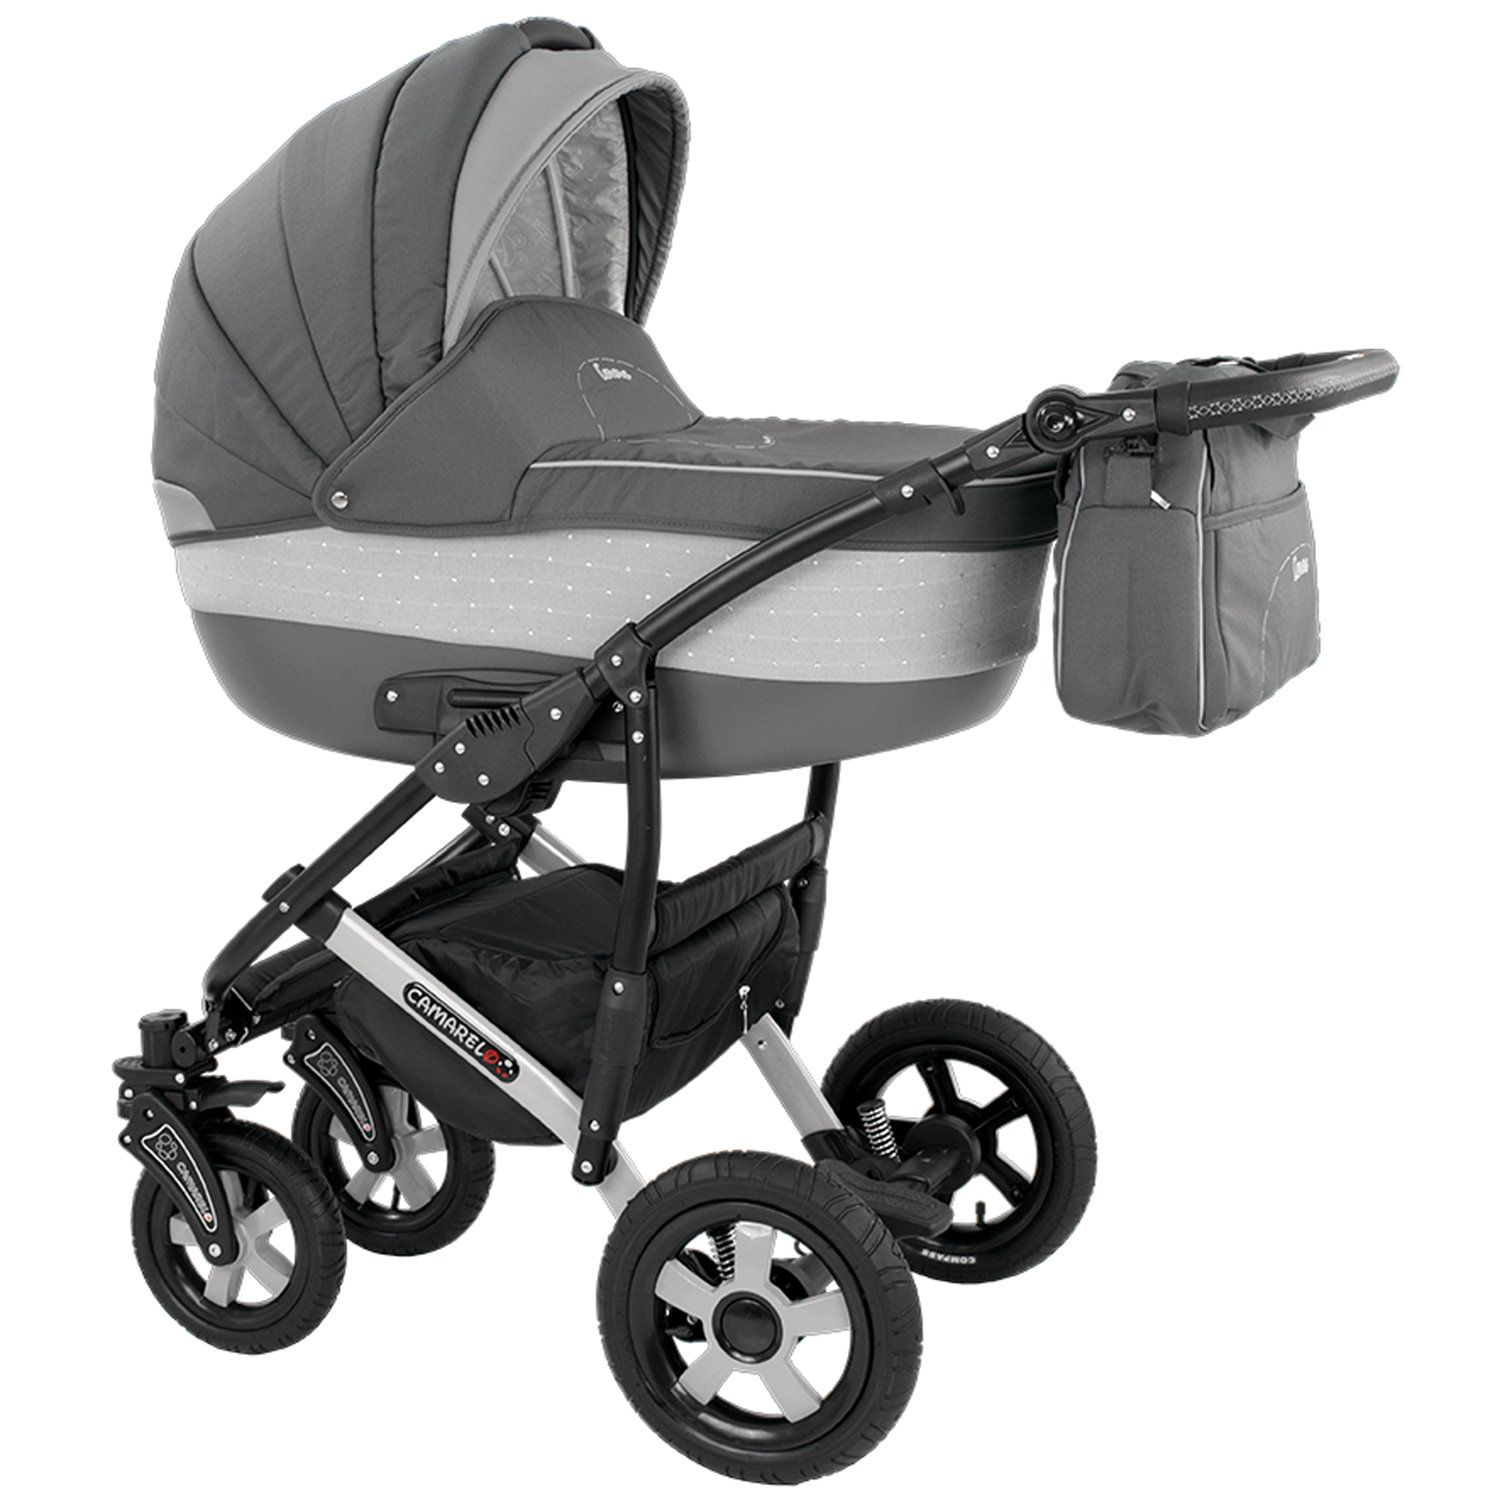 Shop Baby Toddlers Baby prams, Baby seat, Boy stroller